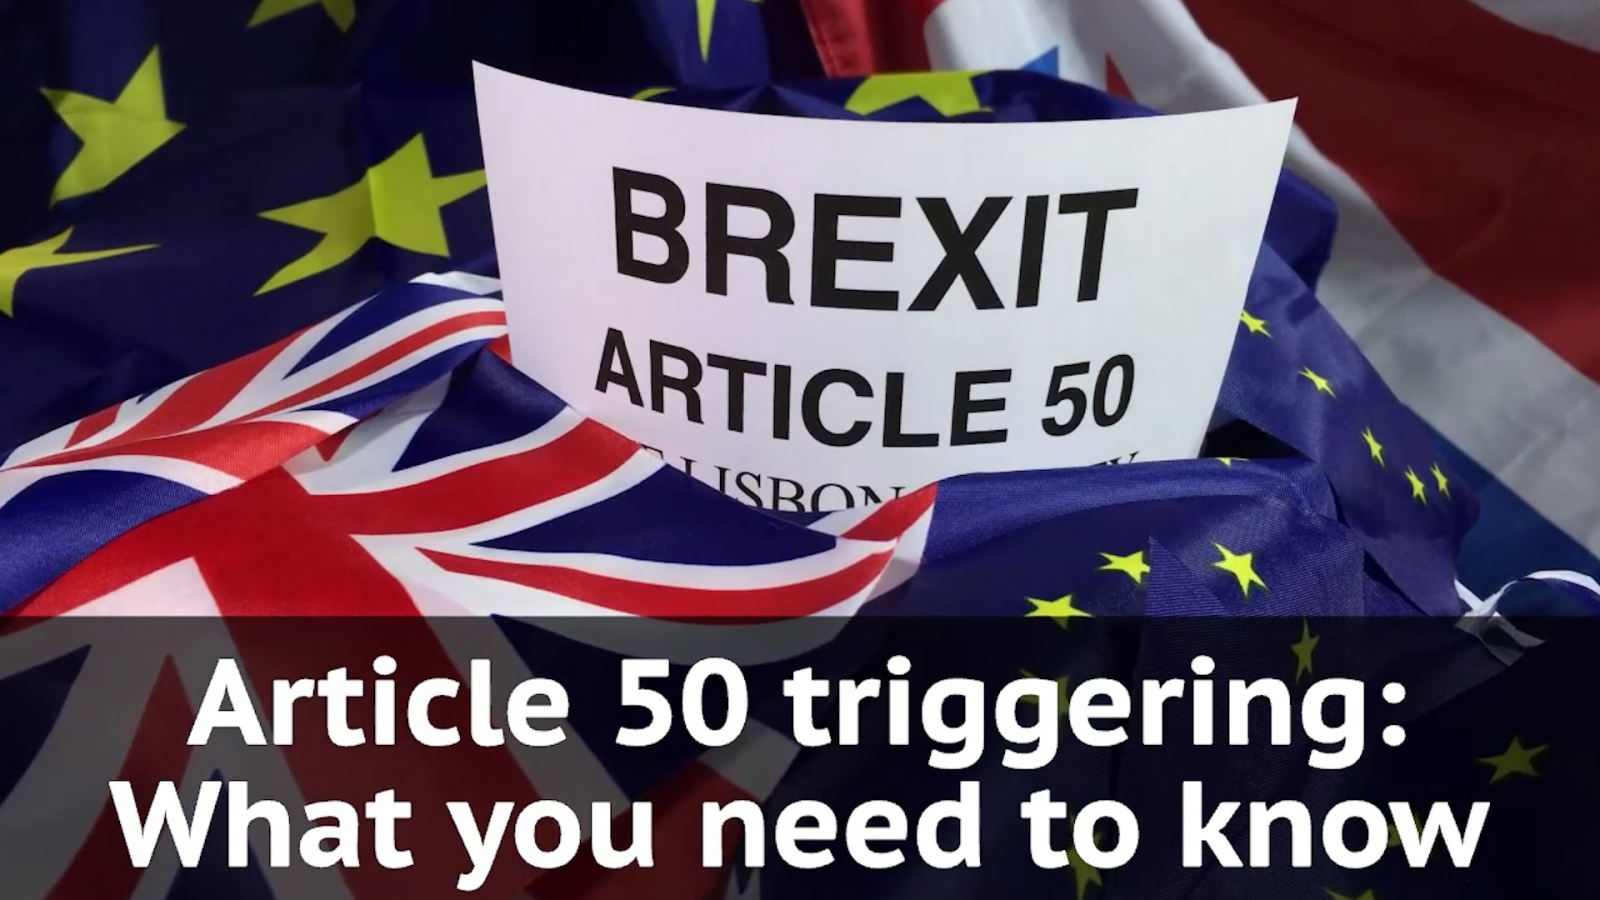 Triggering Article 50: What you need to know